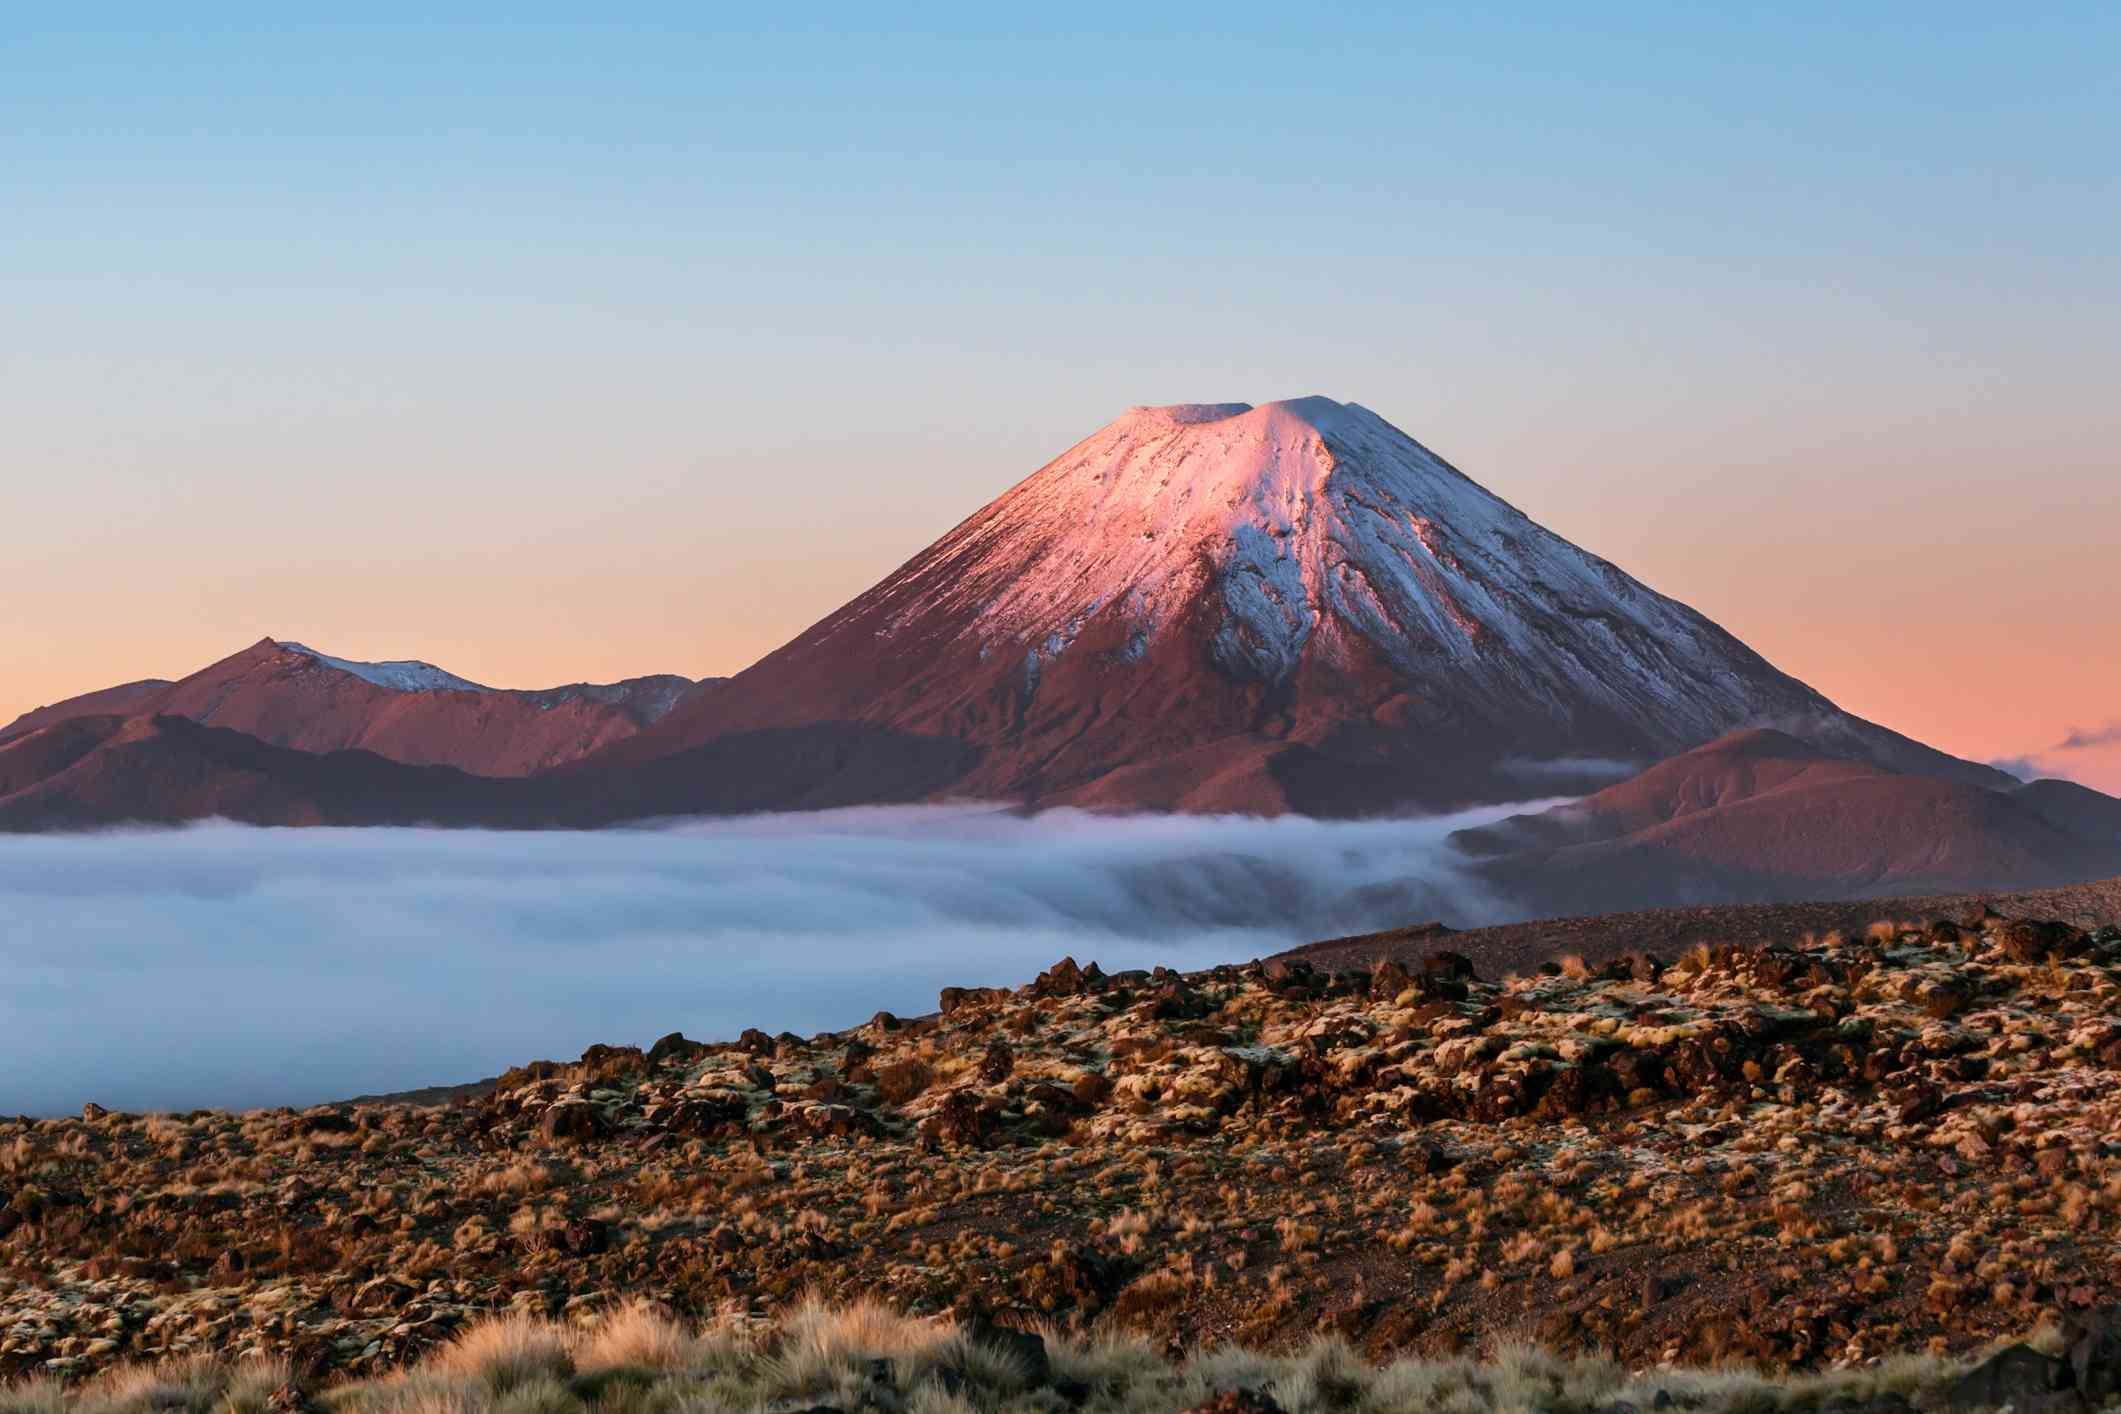 View of snowcapped Mt. Ngauruhoe volcano under a blue and orange sky at sunset in Tongariro National Park, North Island, New Zealand